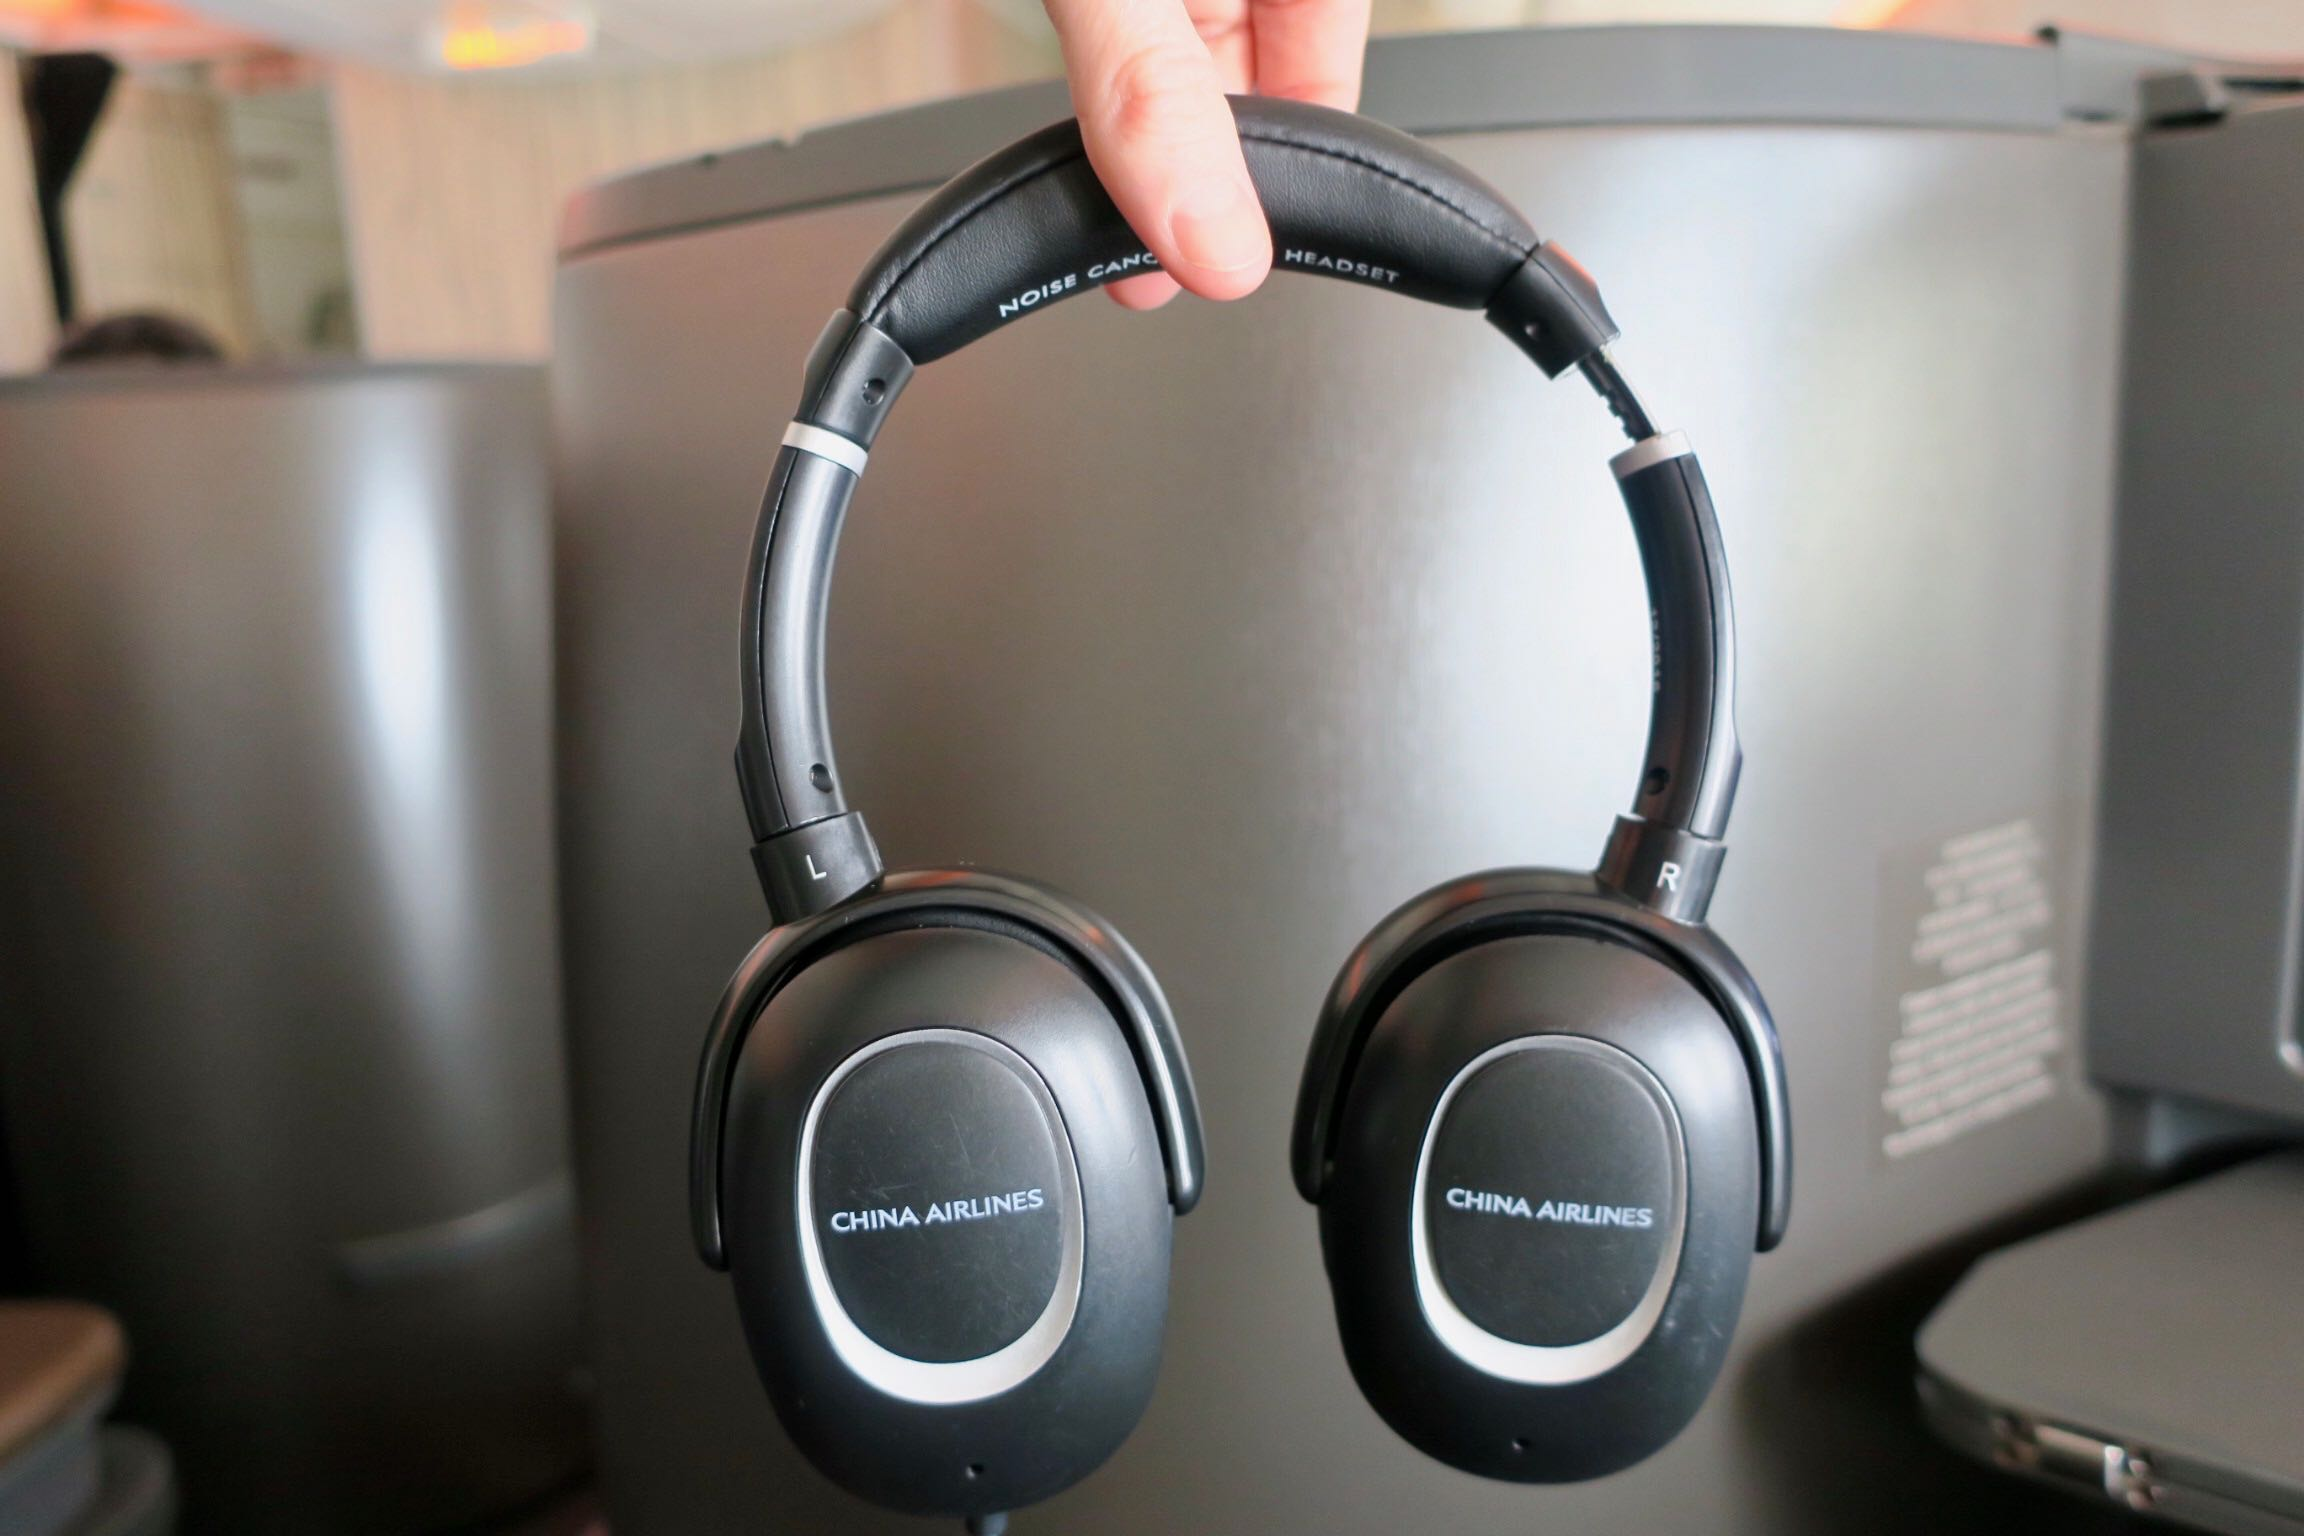 China Airlines Business Class headphone